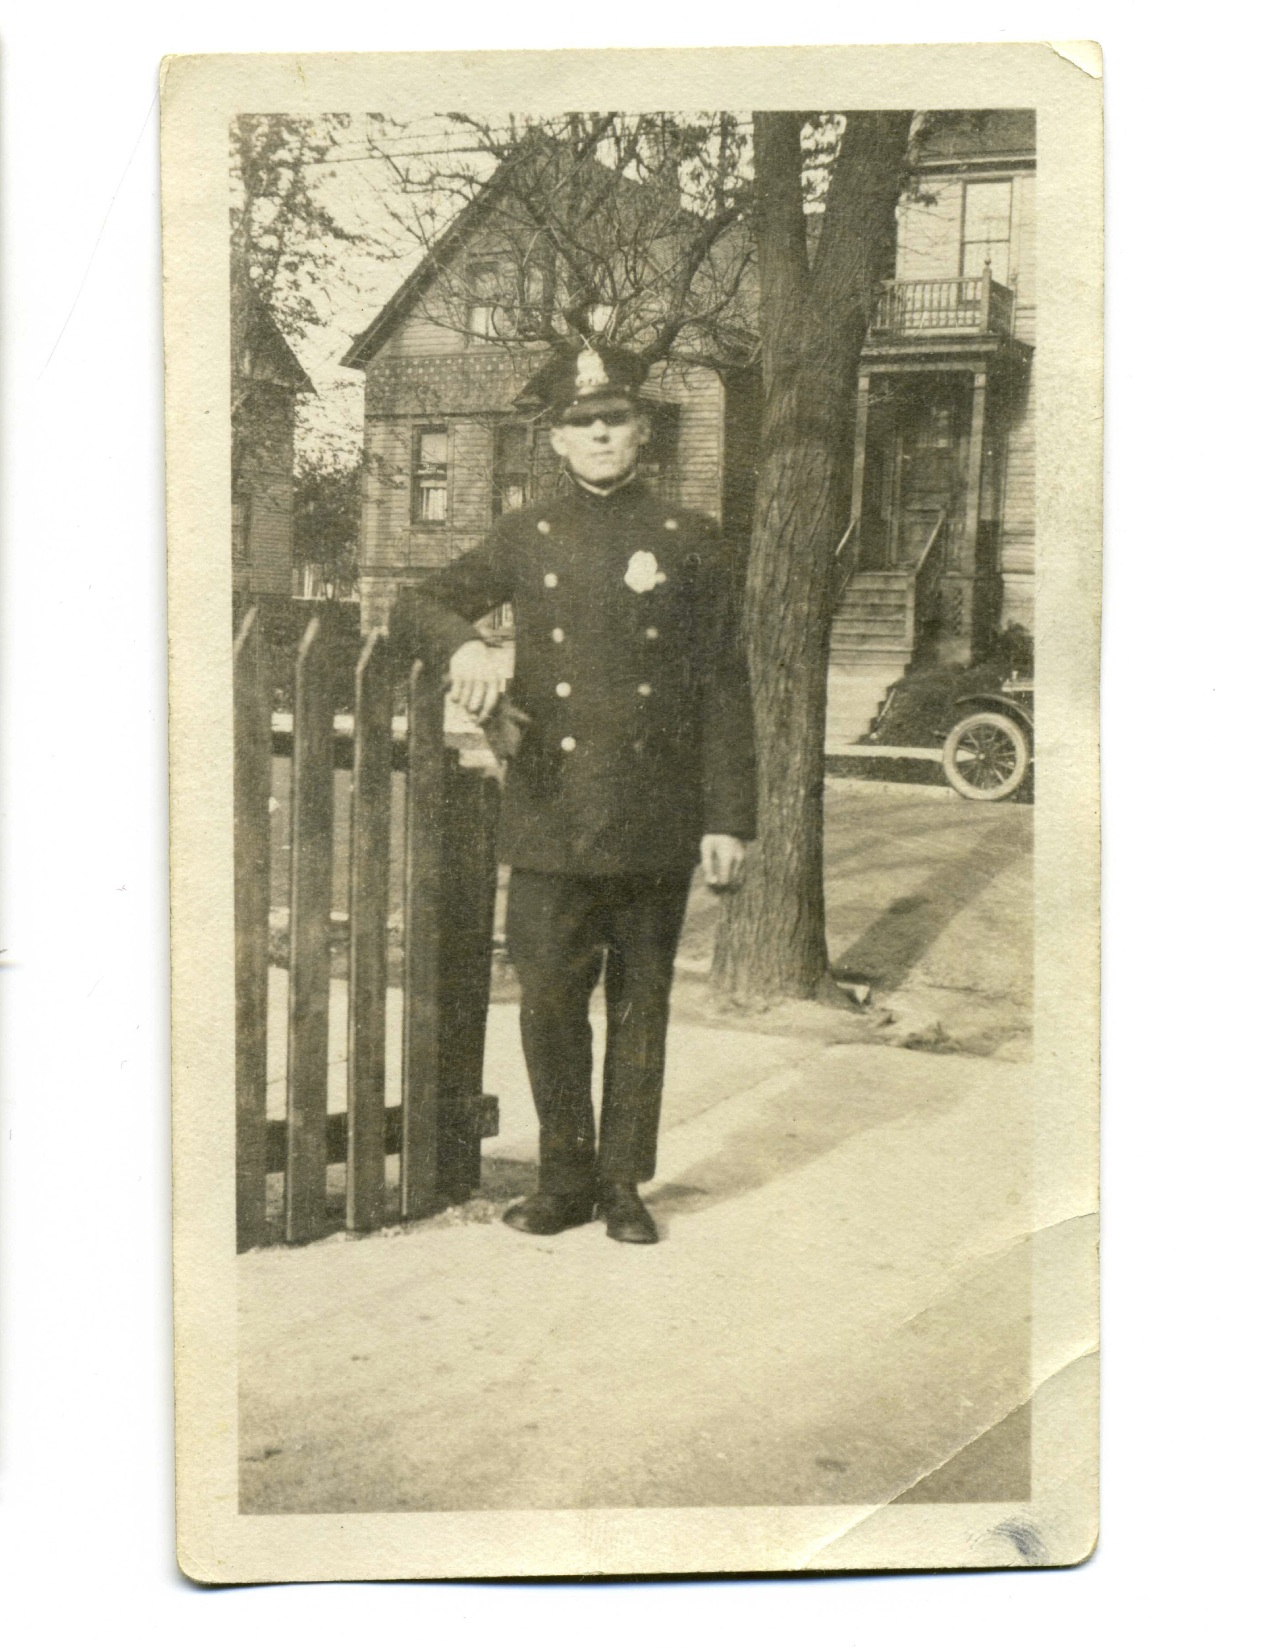 Police Officer William F. Kaemmerling | Milwaukee Police Department, Wisconsin